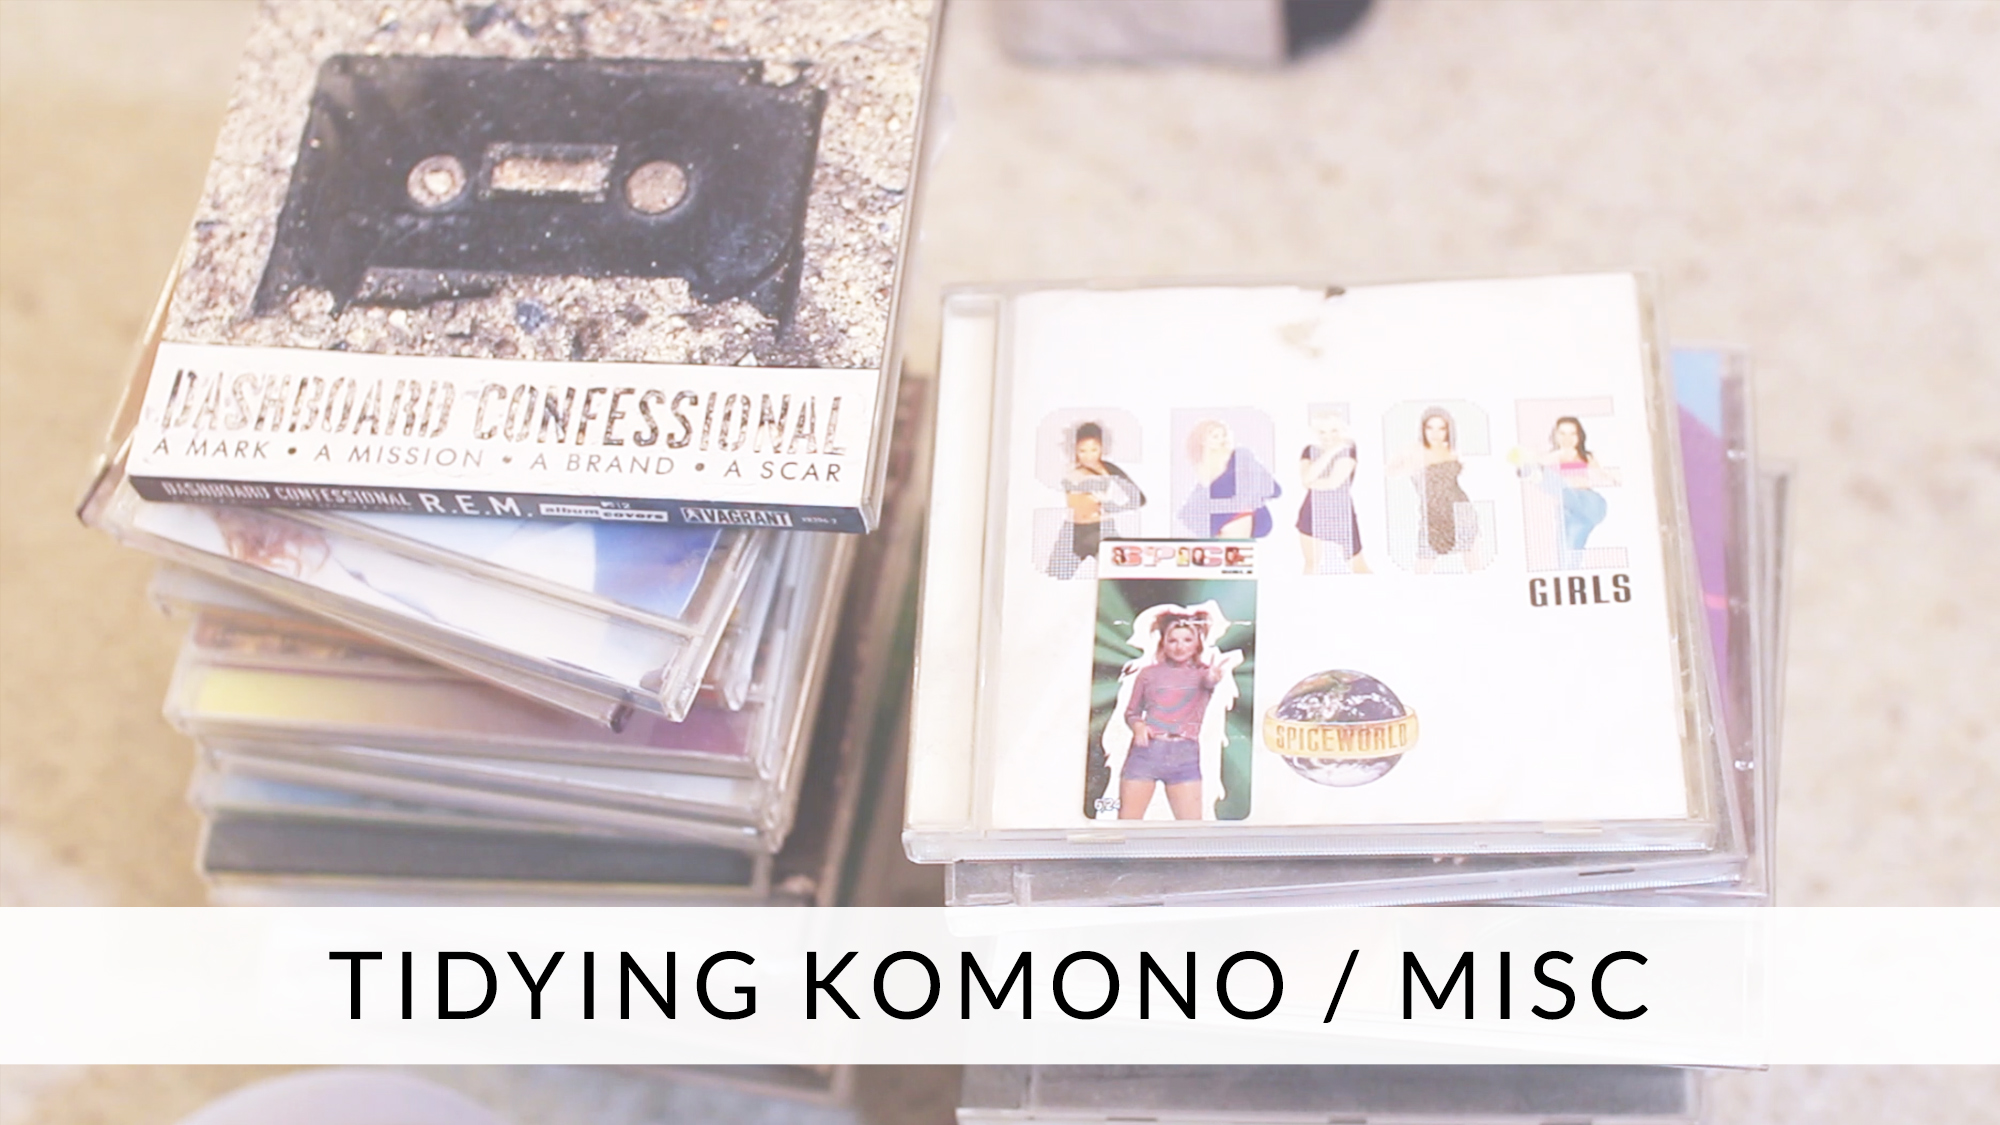 Tidying with KonMari: Komono / Misc